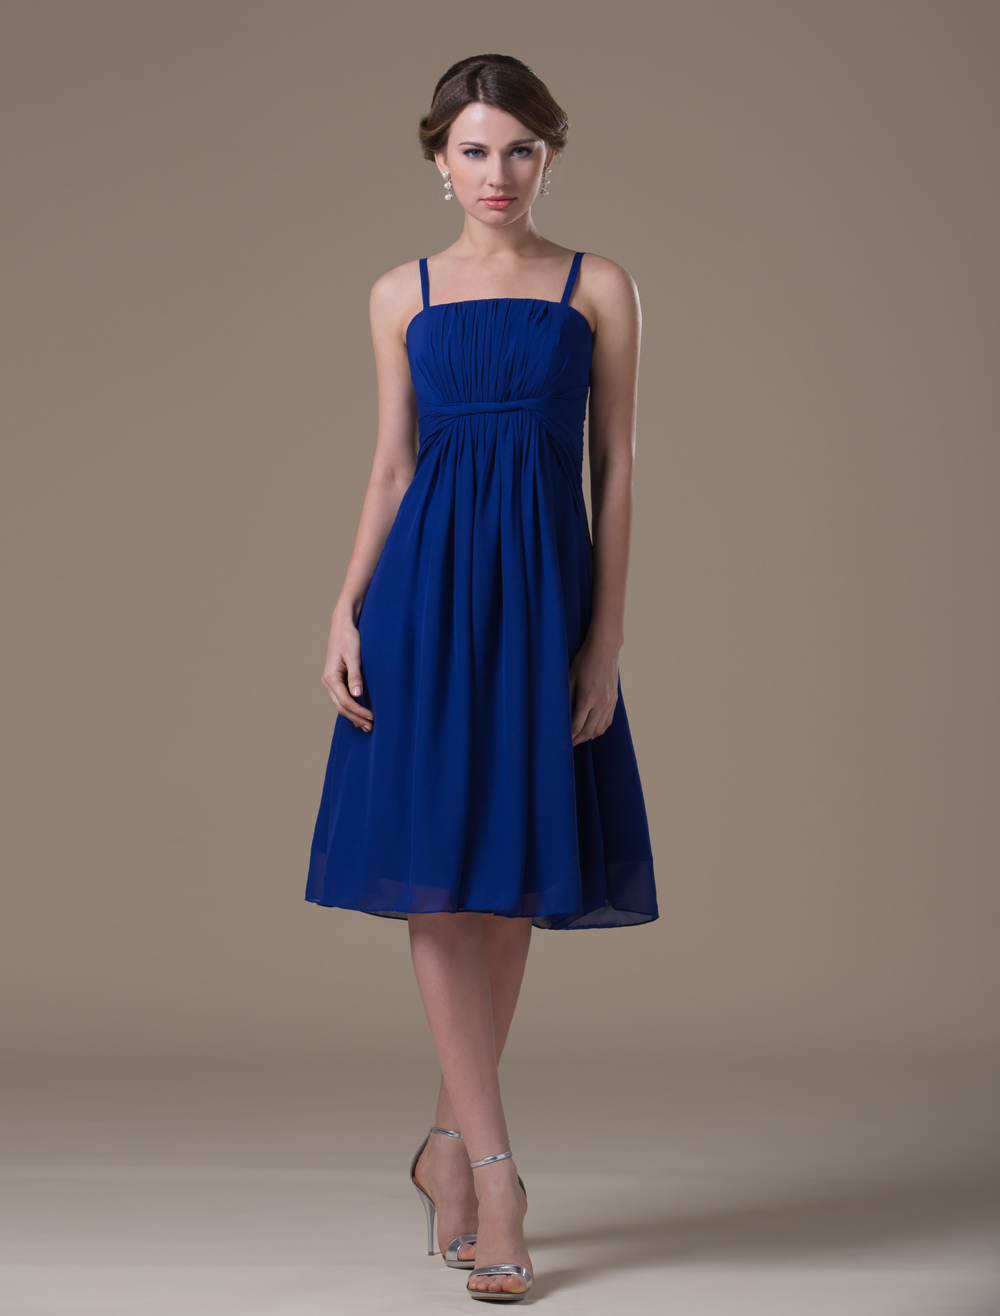 Dark Blue Chiffon Knee Length Maternity Bridesmaid Dress